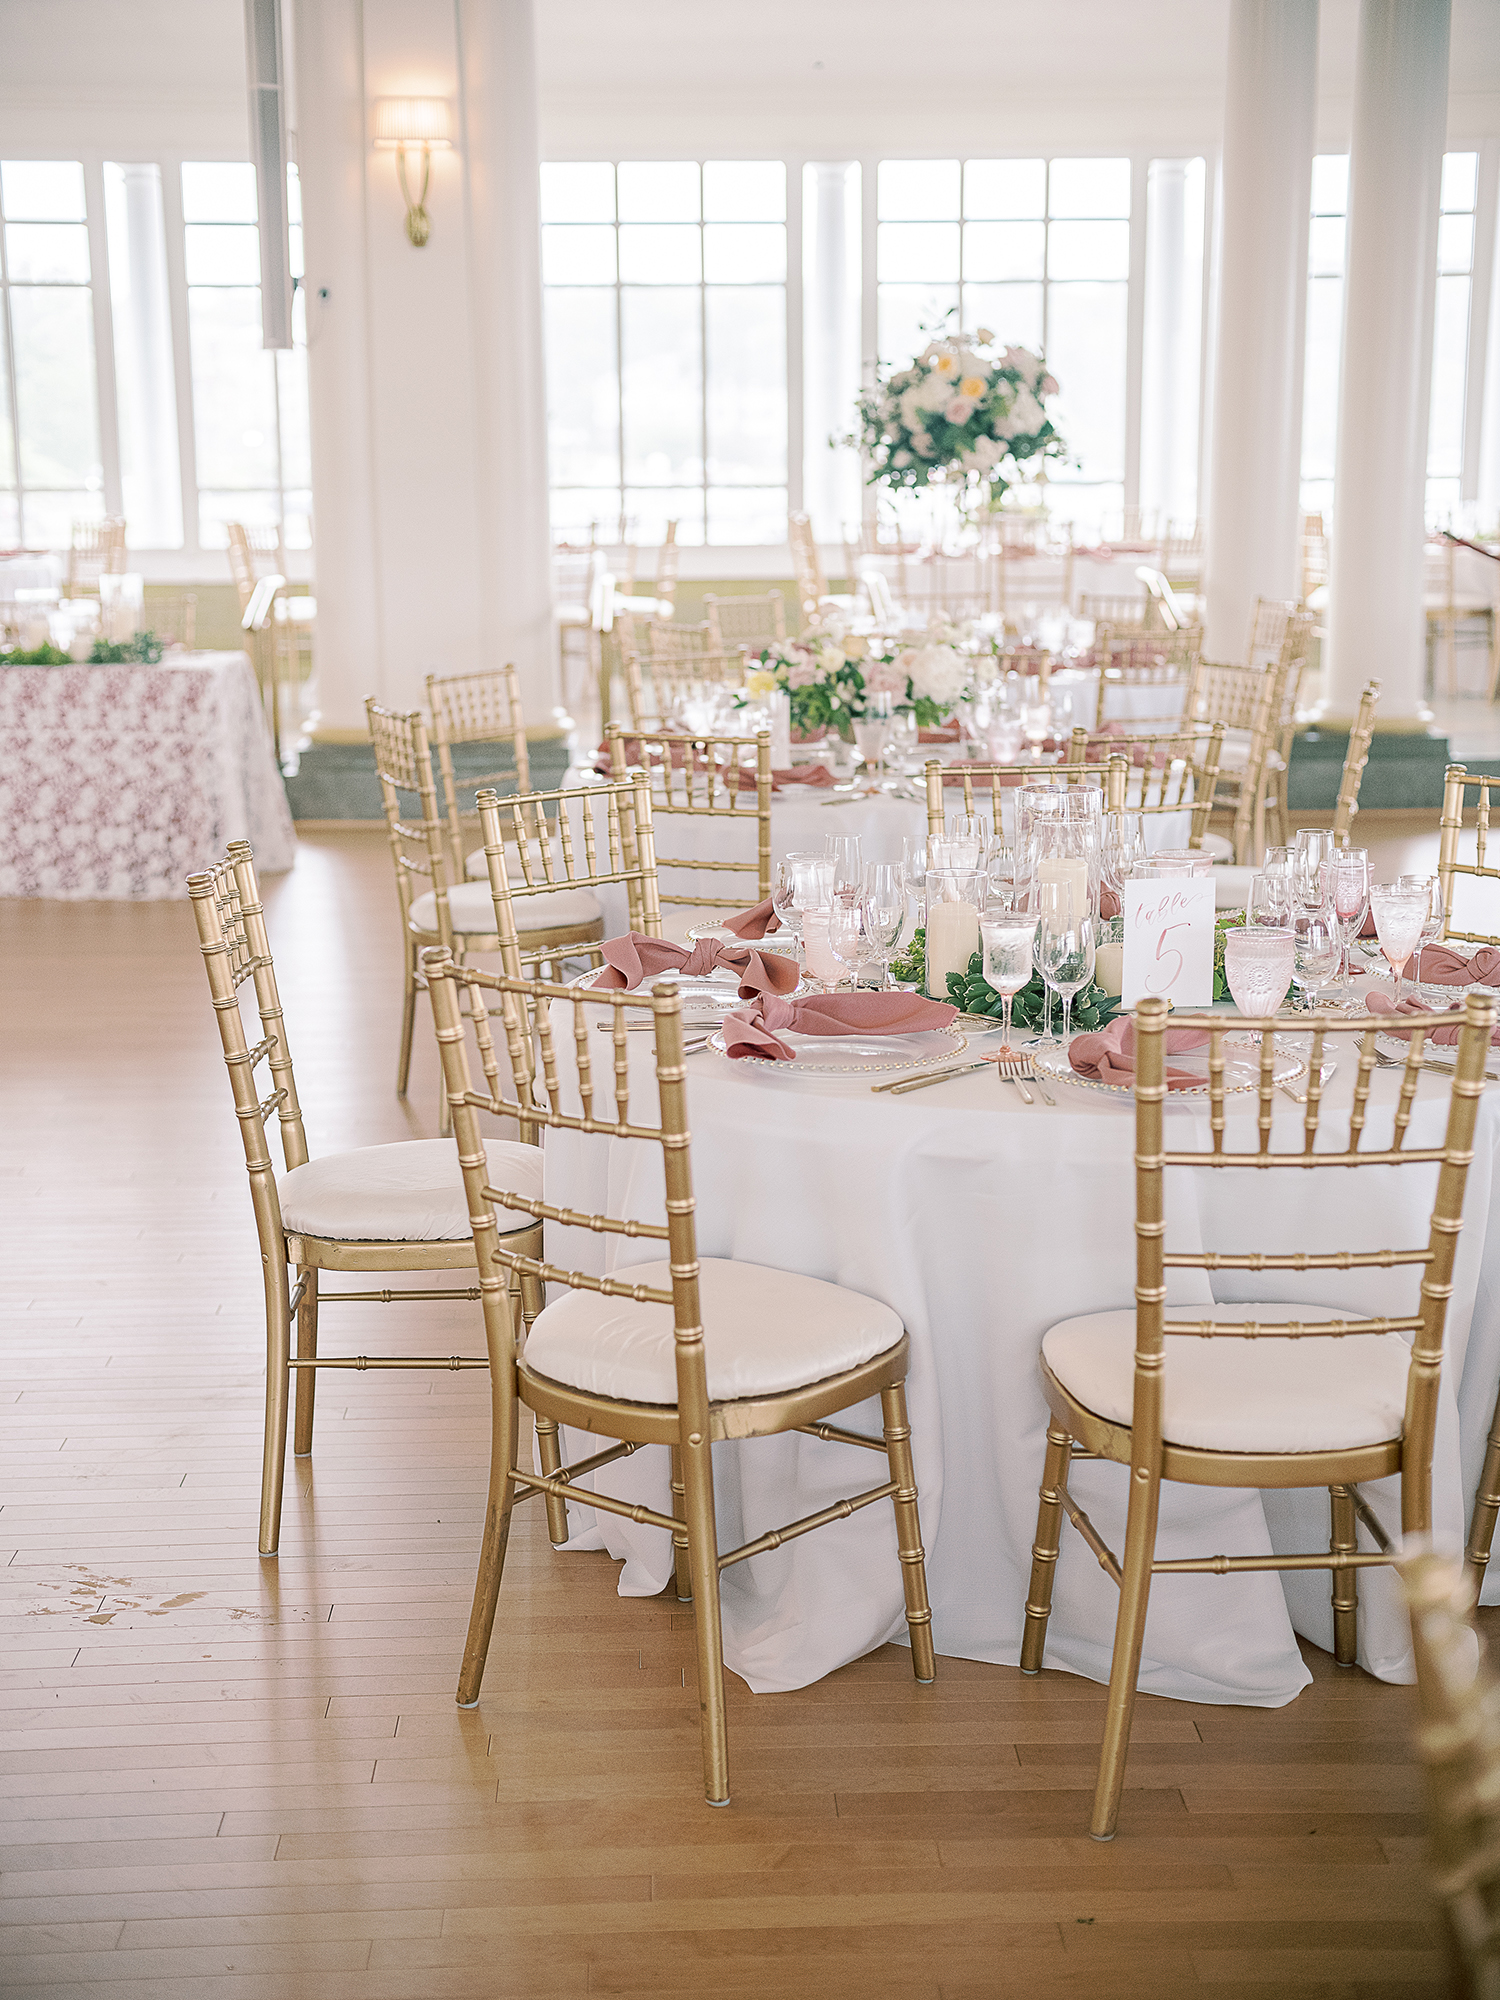 Christina Dusty Rose and Gold Wedding Ballroom Reception with Watercolor Table Numbers Clary Pfeiffer Photography